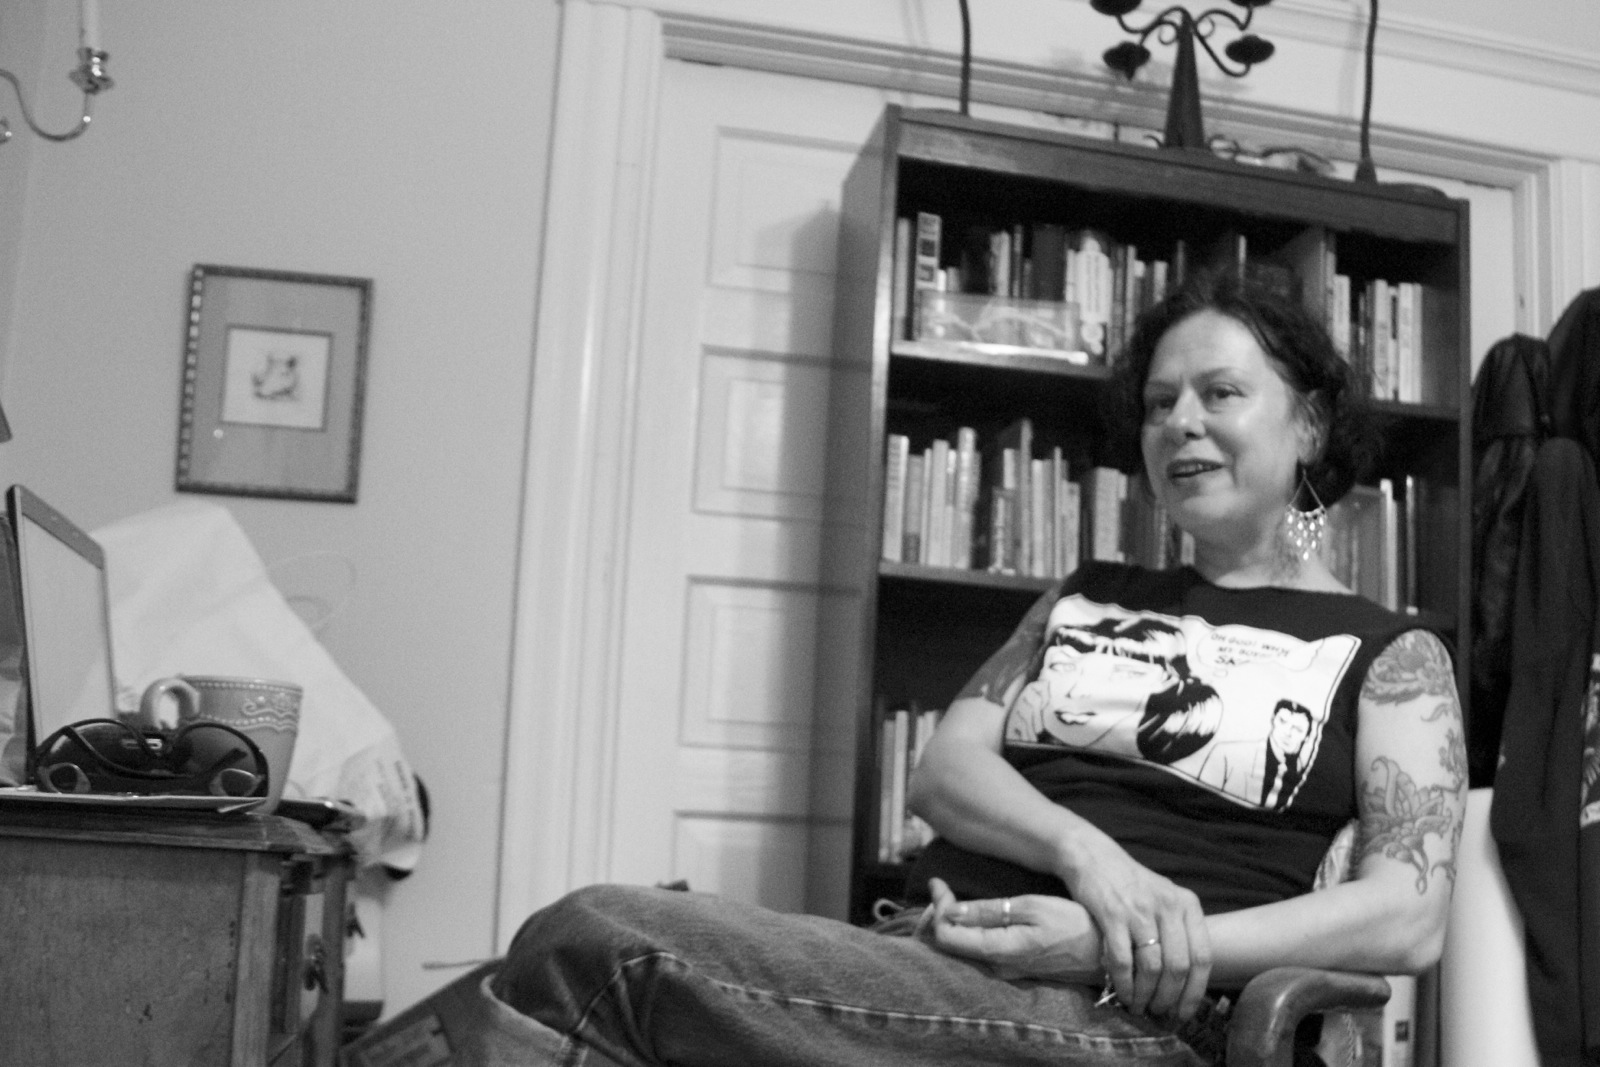 Mission author Daphne Gottlieb spent four years co-editing thousands of letters written by serial killer Aileen Wuornos.